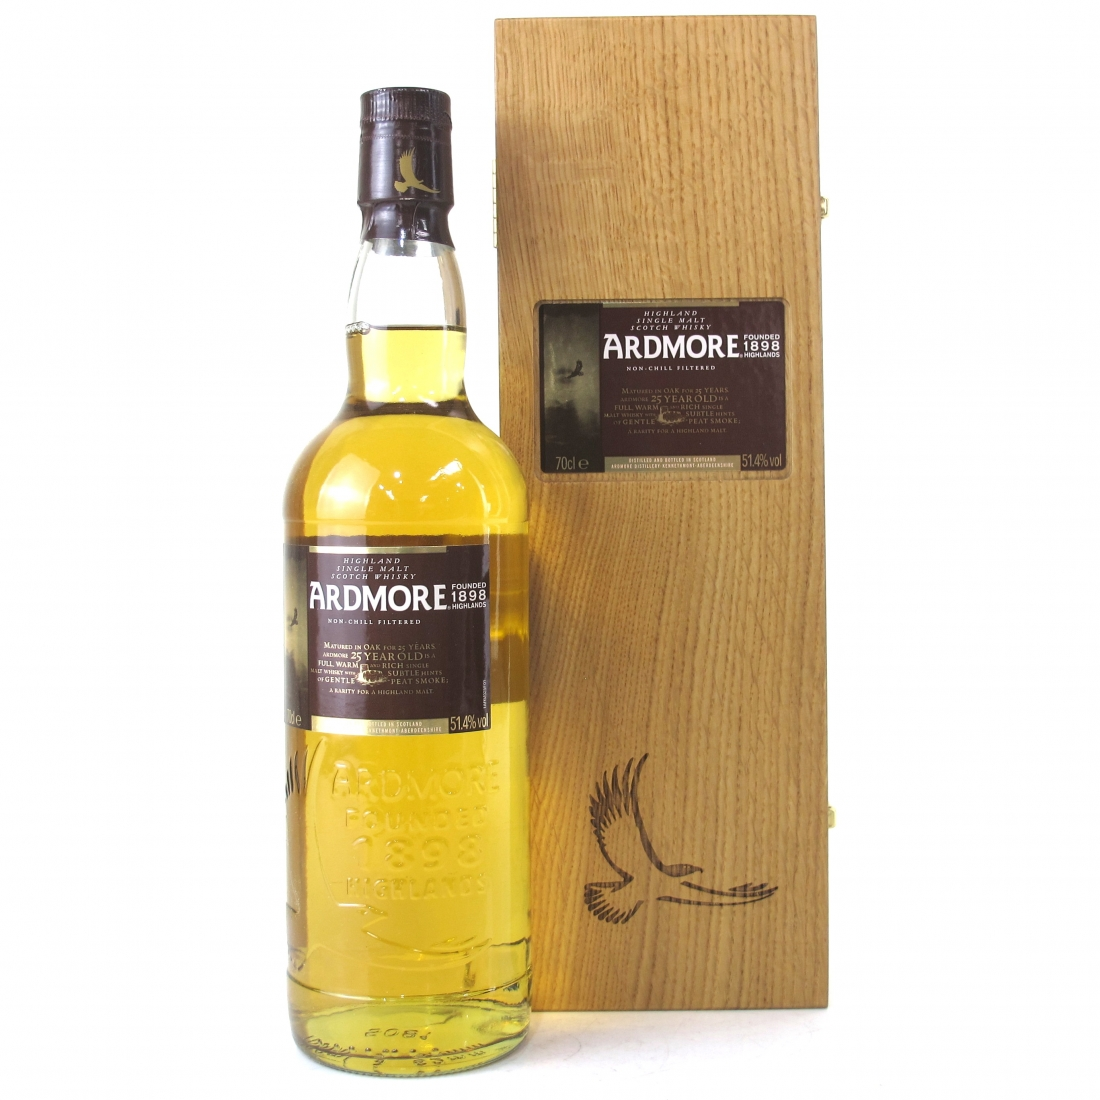 Ardmore 25 Year Old Cask Strength